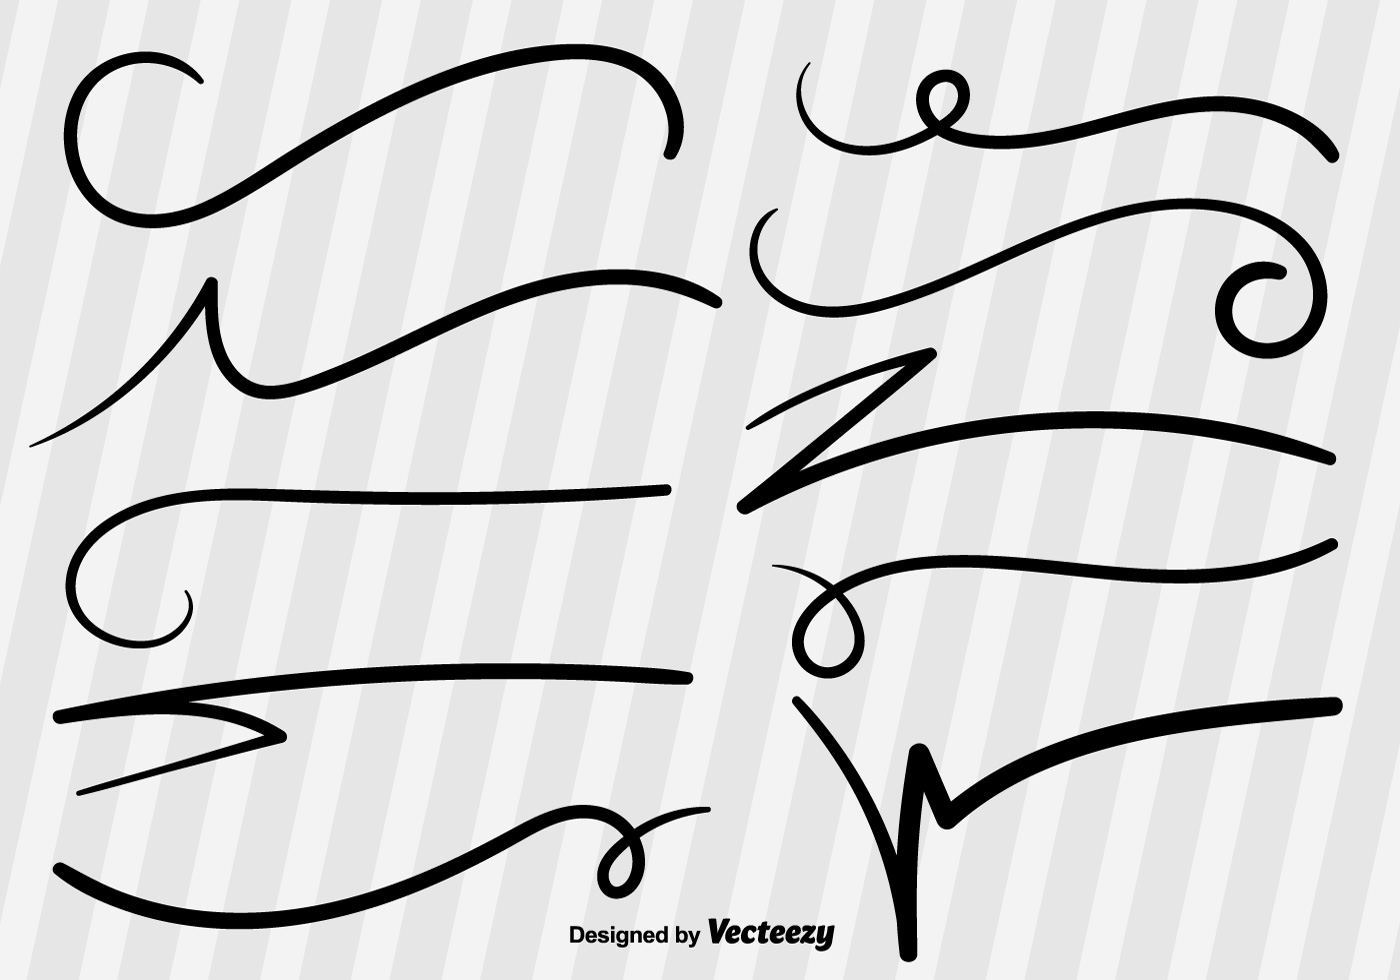 Vector Drawing Lines Definition : Swish sketch vector lines download free art